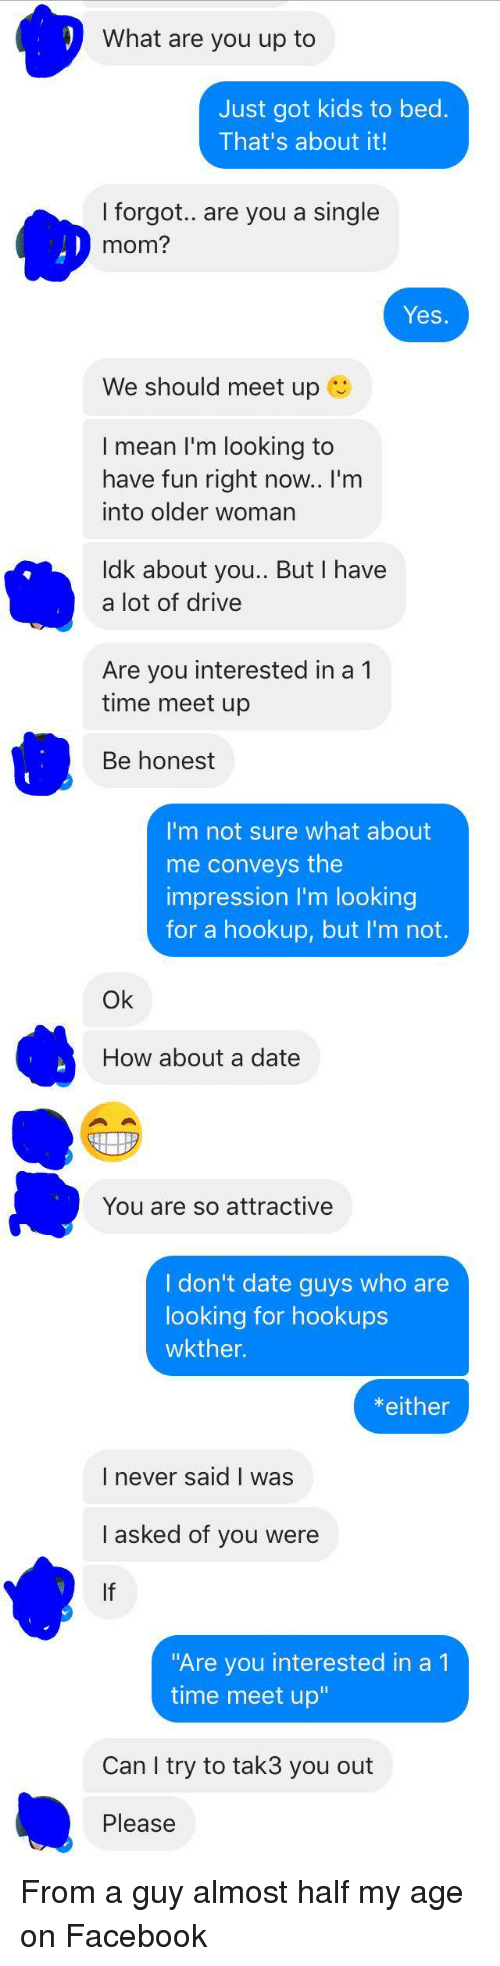 Single and not interested in hookup